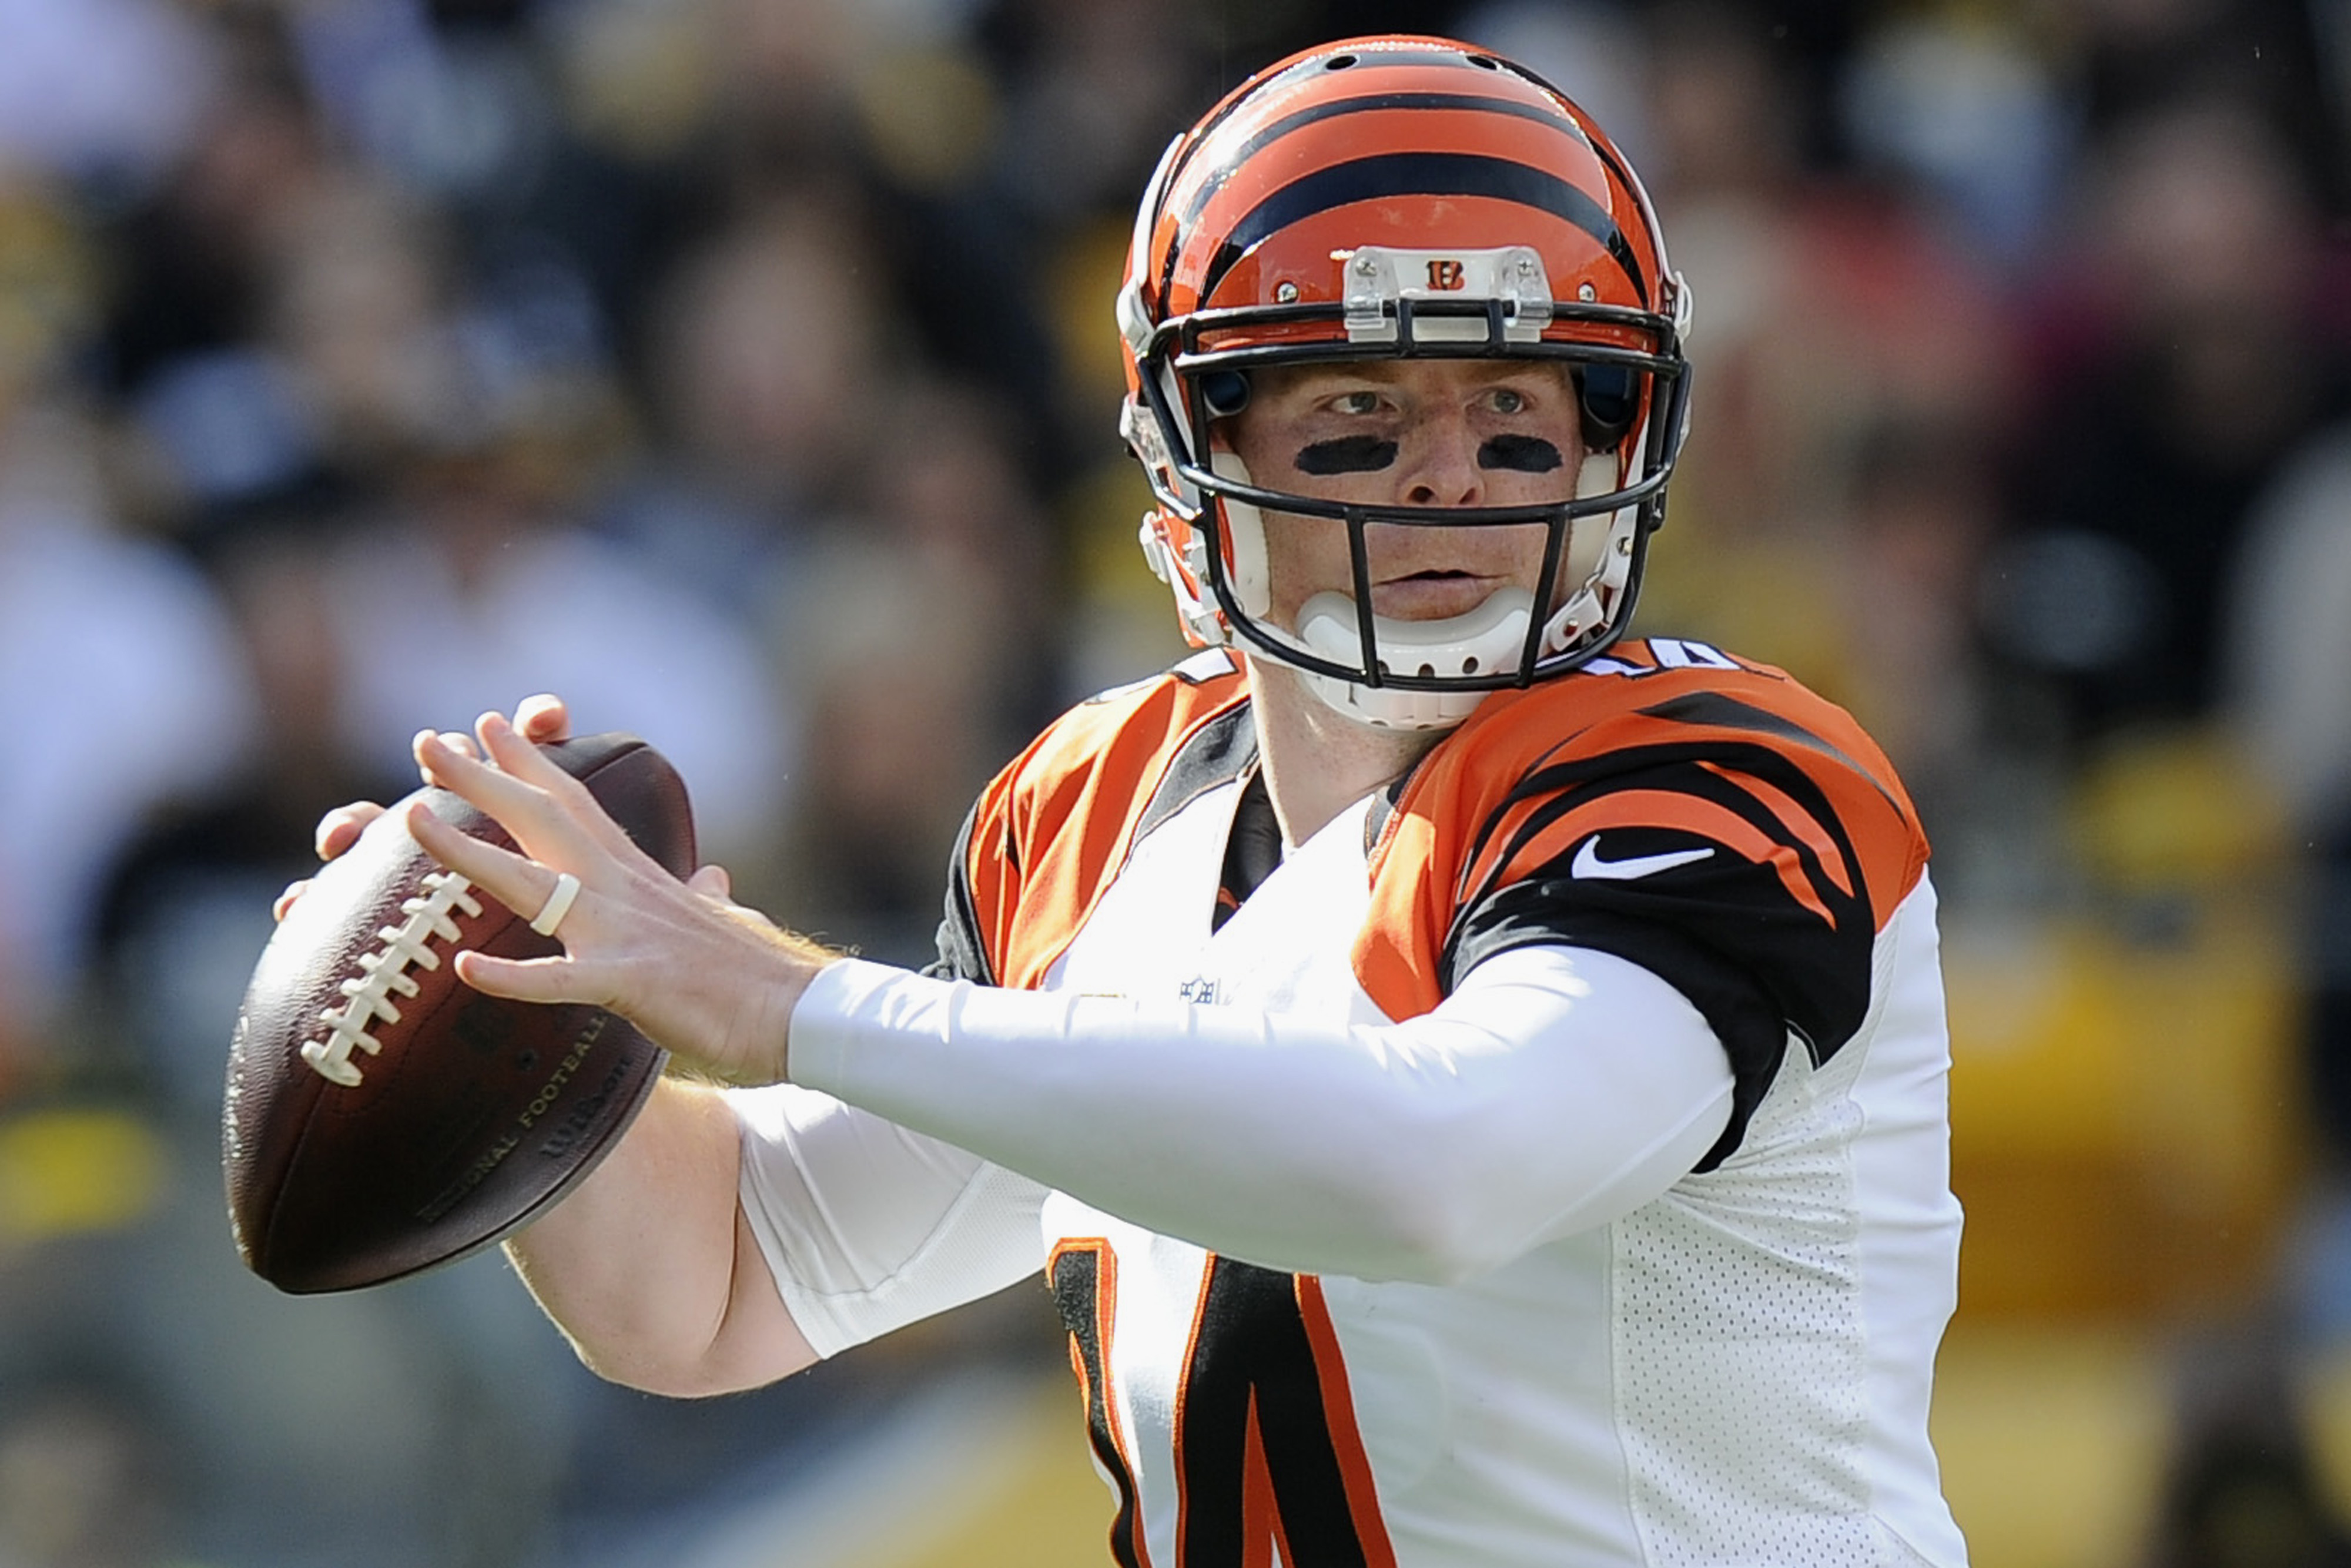 Cincinnati Bengals quarterback Andy Dalton prepares to pass in the first quarter of an NFL football game against the Pittsburgh Steelers, Sunday, Nov. 1, 2015, in Pittsburgh. (AP Photo/Don Wright)